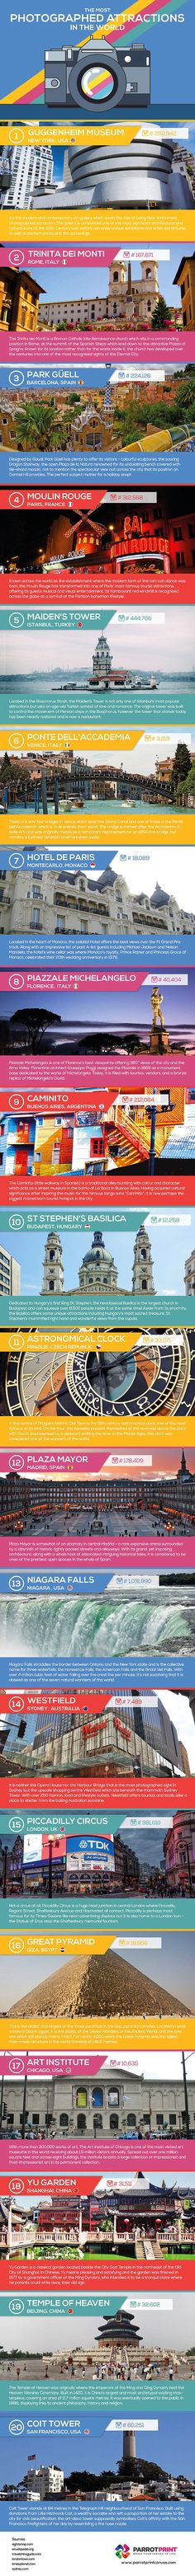 The Most Photographed Attractions In The World Infographic #camera #photography